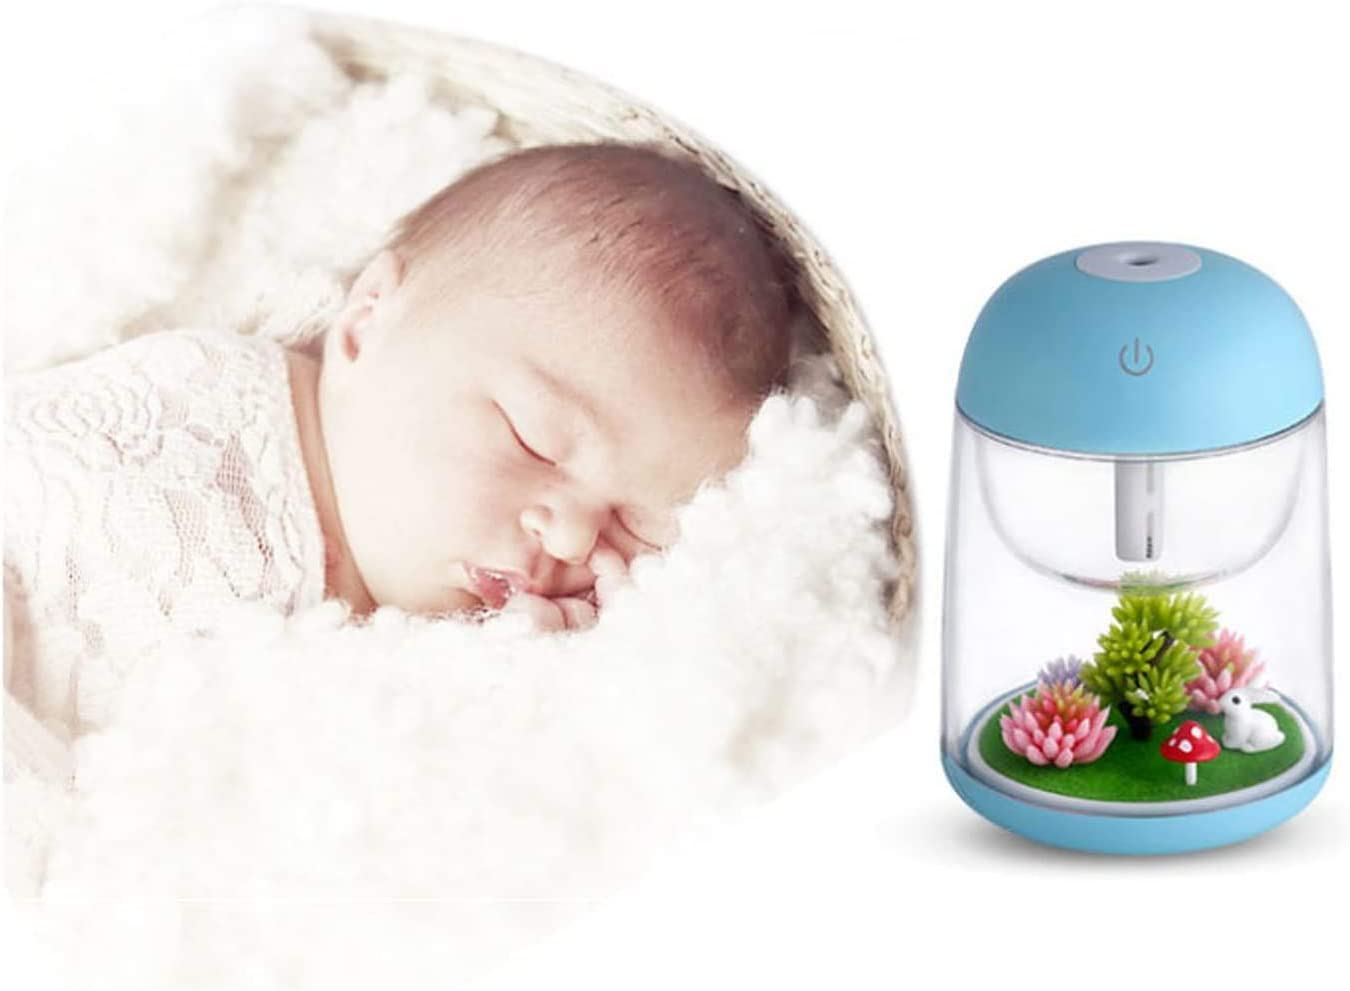 AEKAN Micro Landscape Humidifier with Changing Led Light,Adjustable Mist Mode, Waterless Auto Shut-off,for Bedroom,Office,Car (Pink) Green